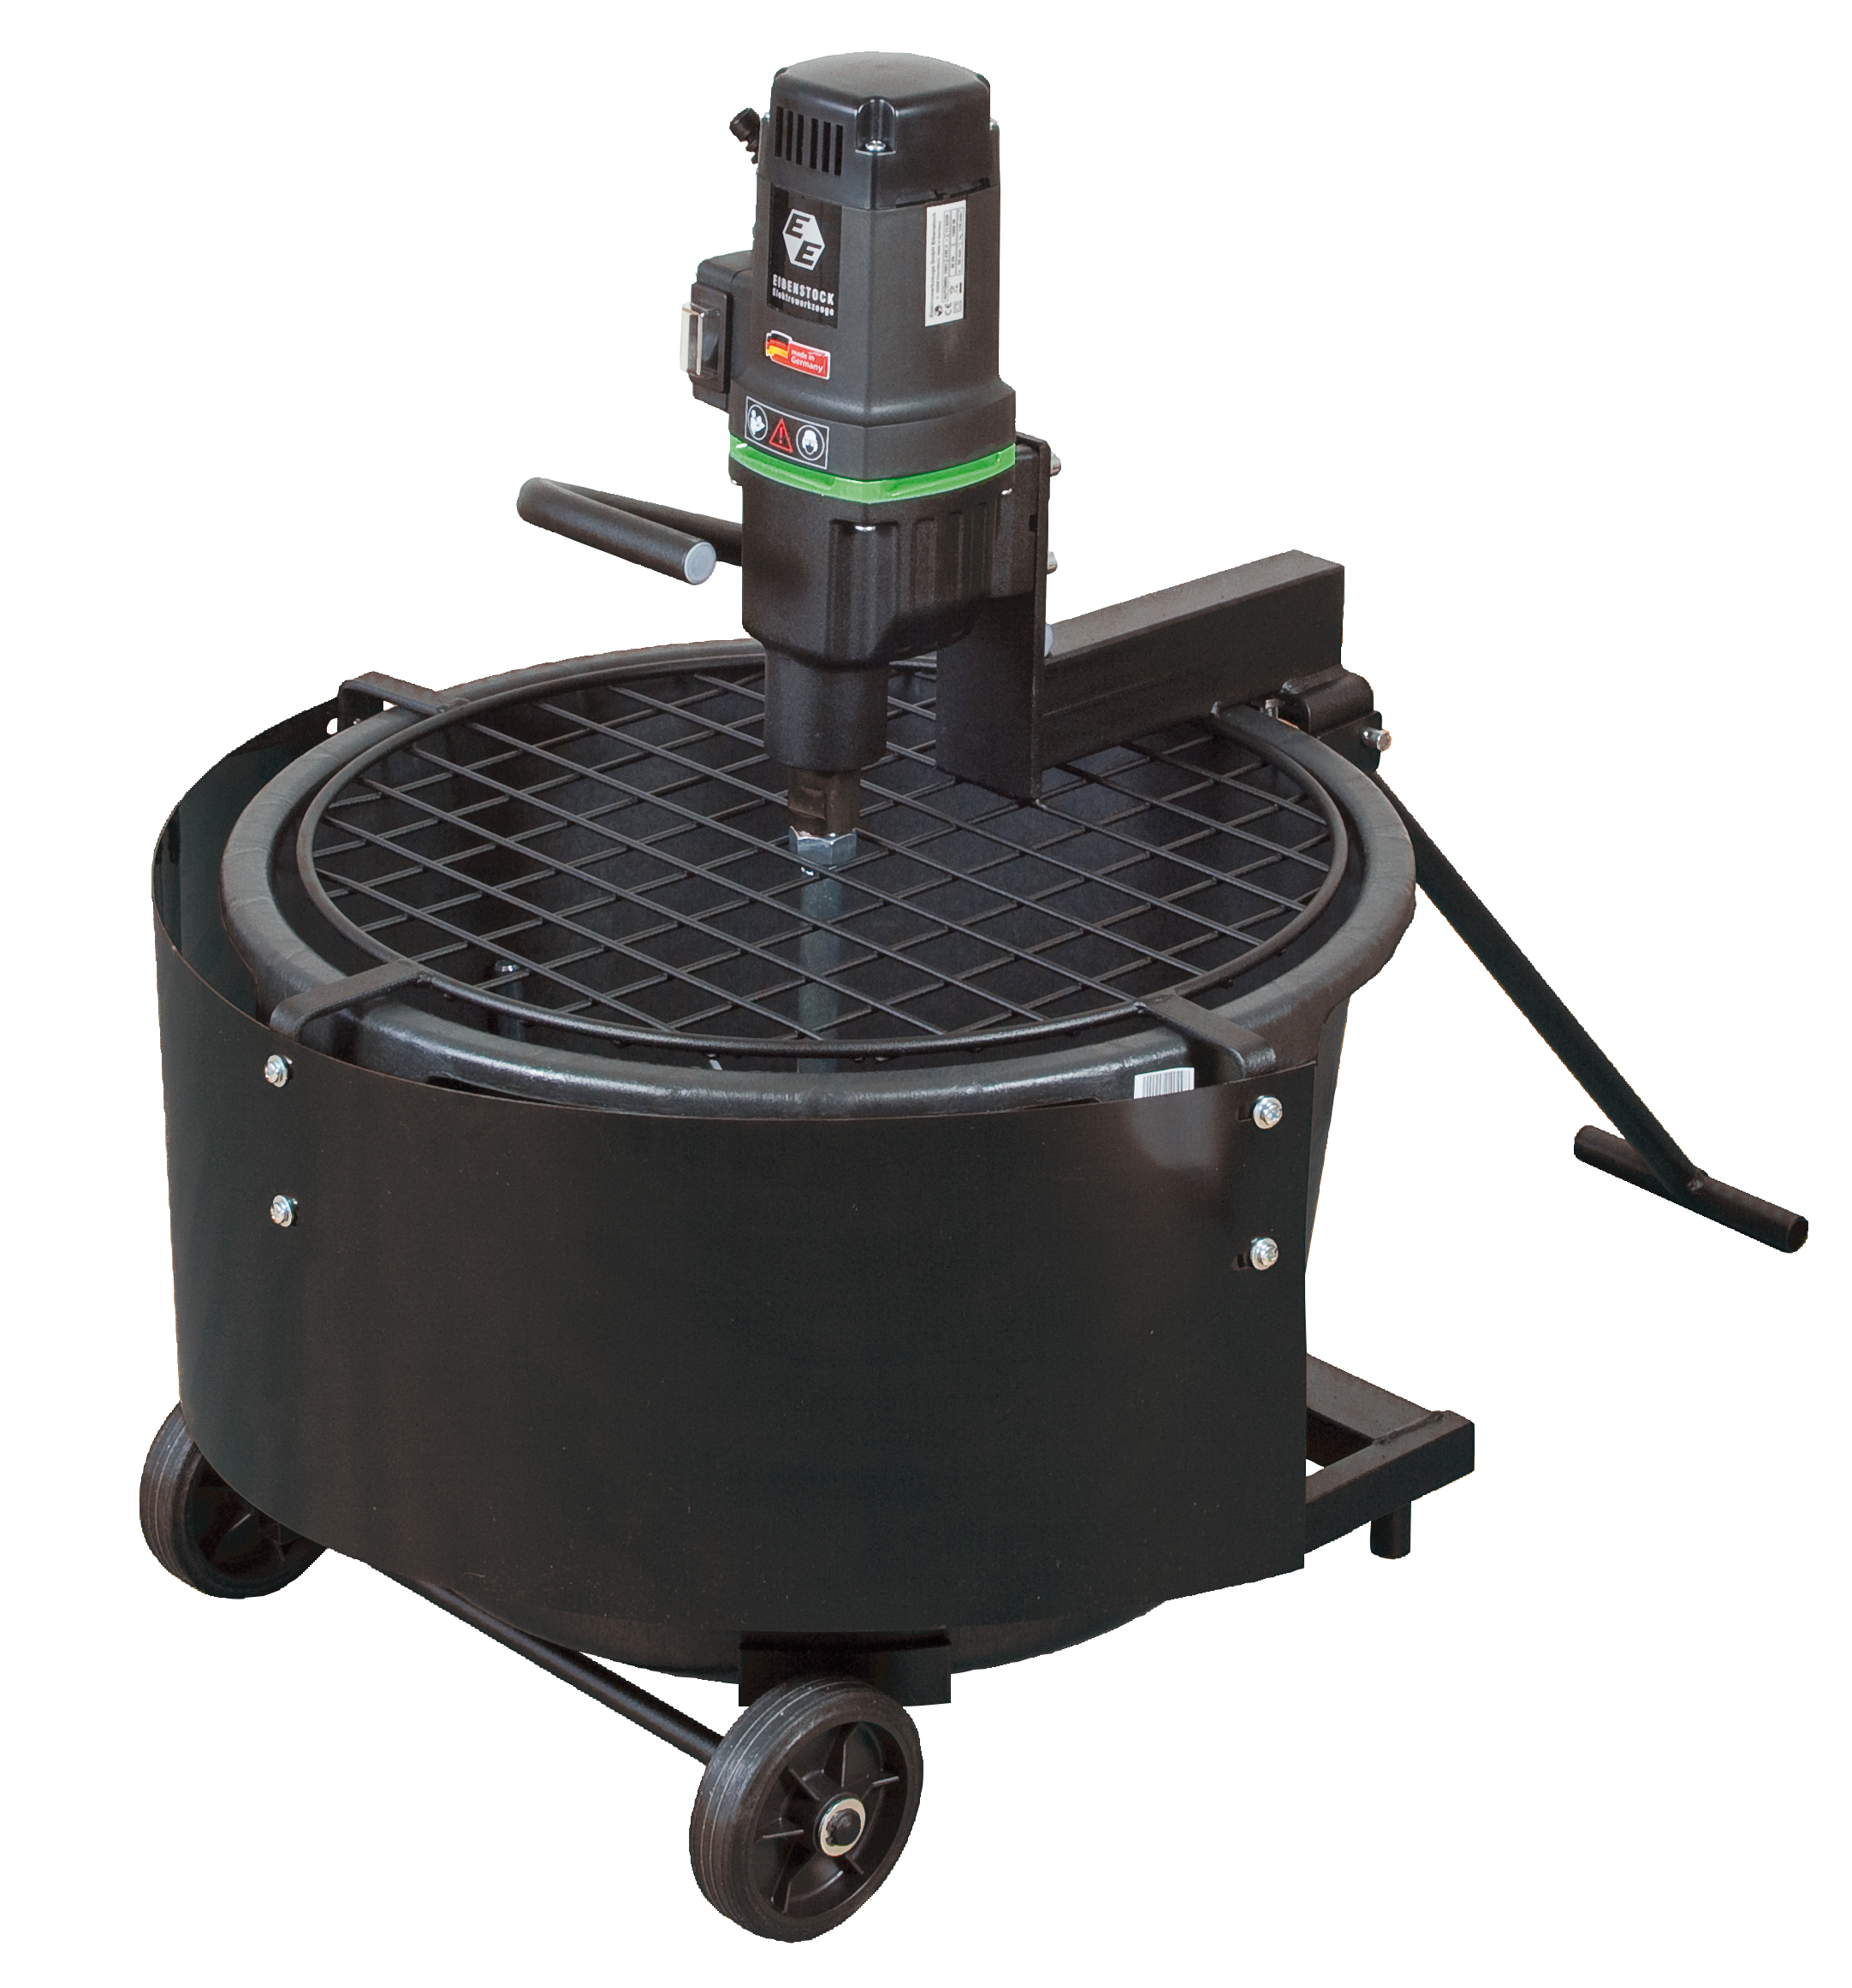 Malaxeur mobile - AUTOMIX 1801 - 1500W